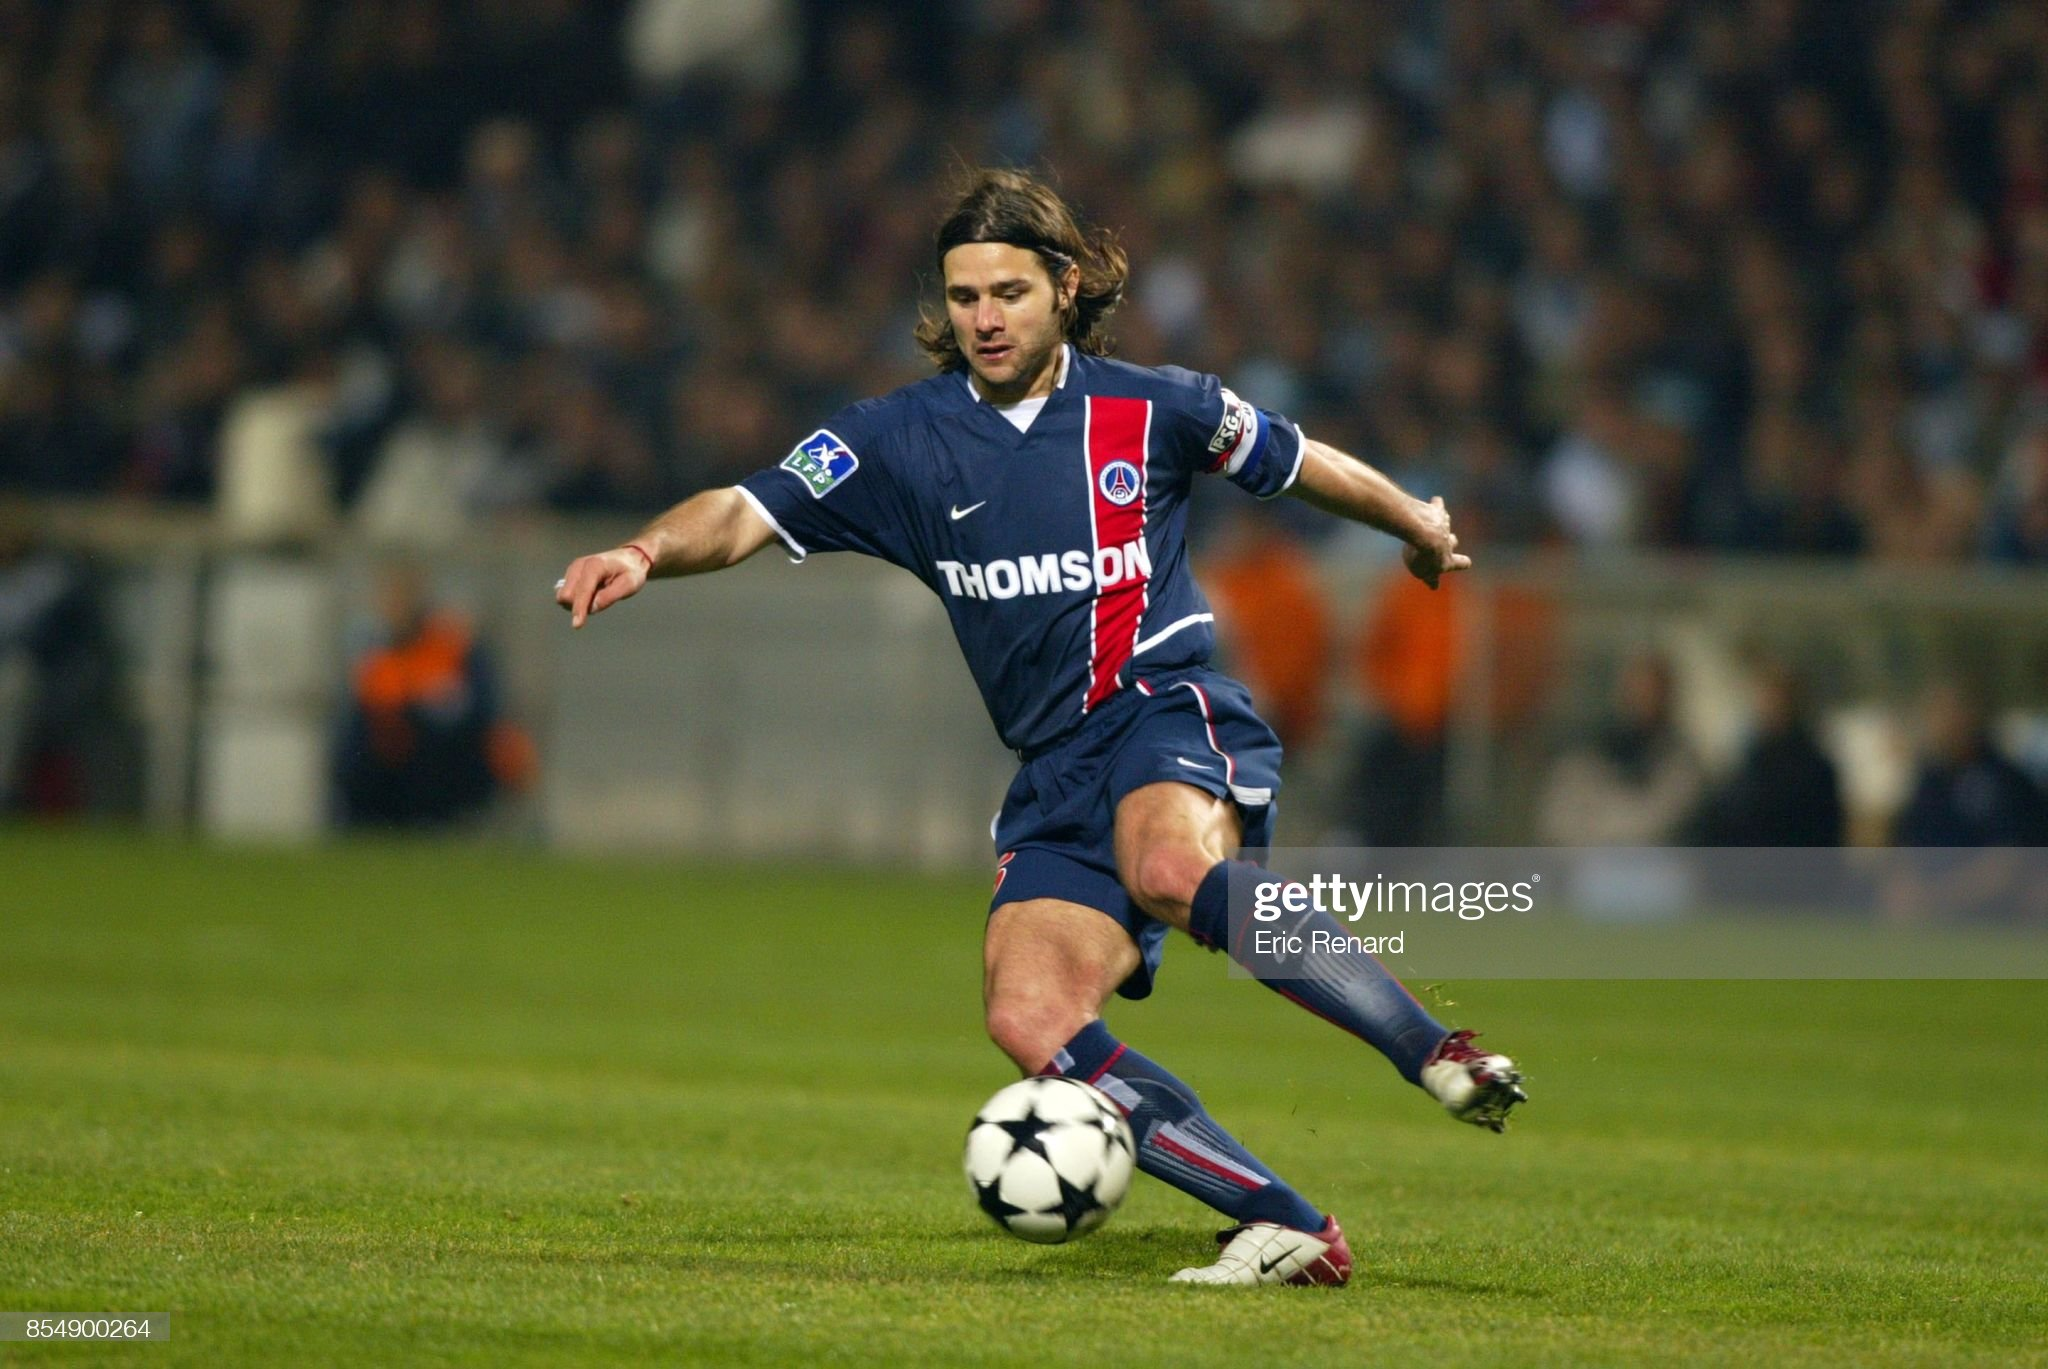 Mauricio POCHETTINO - 09.03.2003 - Marseille / PSG - 30eme journee de Ligue 1 - Stade Velodrome - Marseille - : News Photo